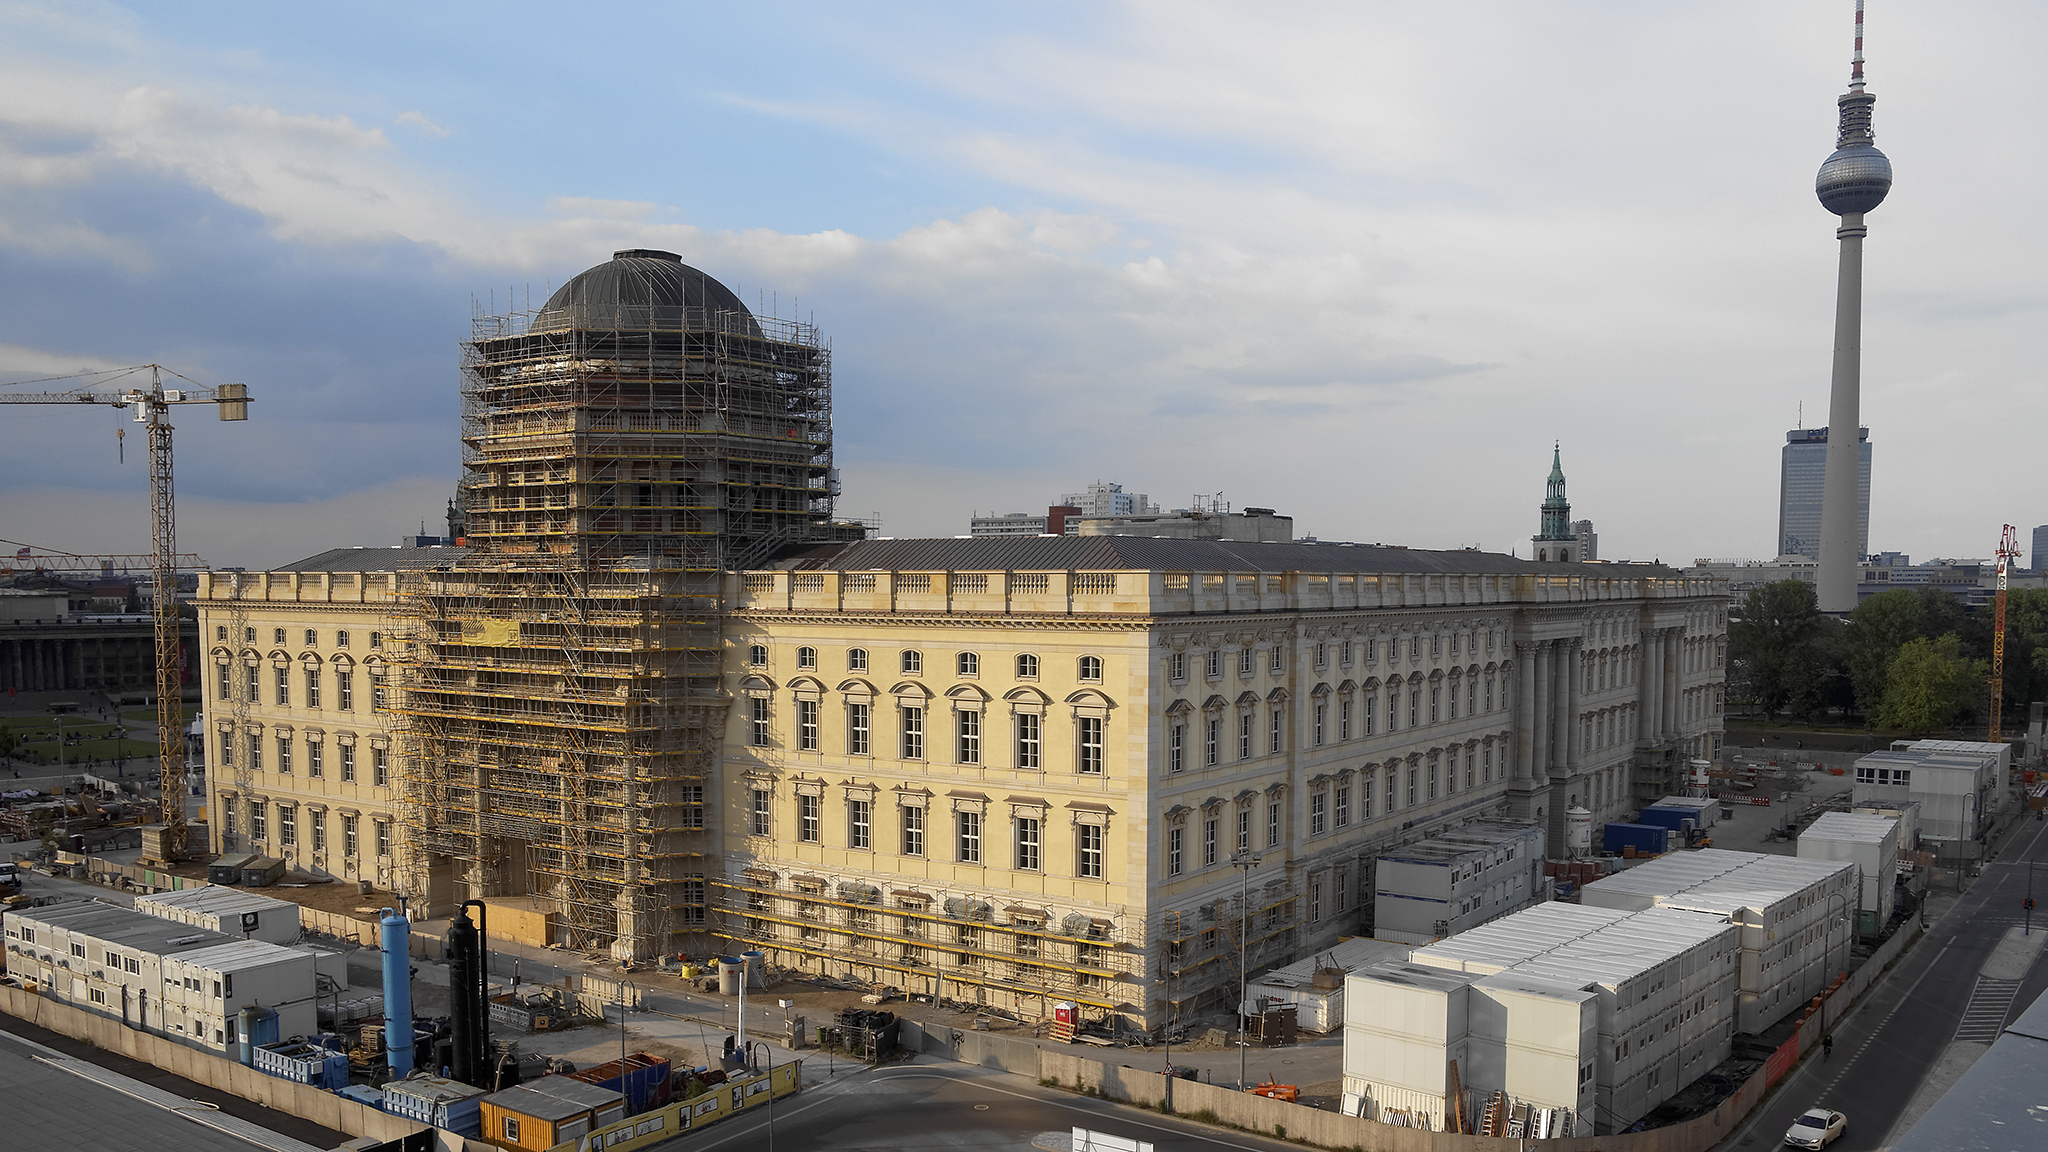 Berlin's Stadtschloss and the trouble with history